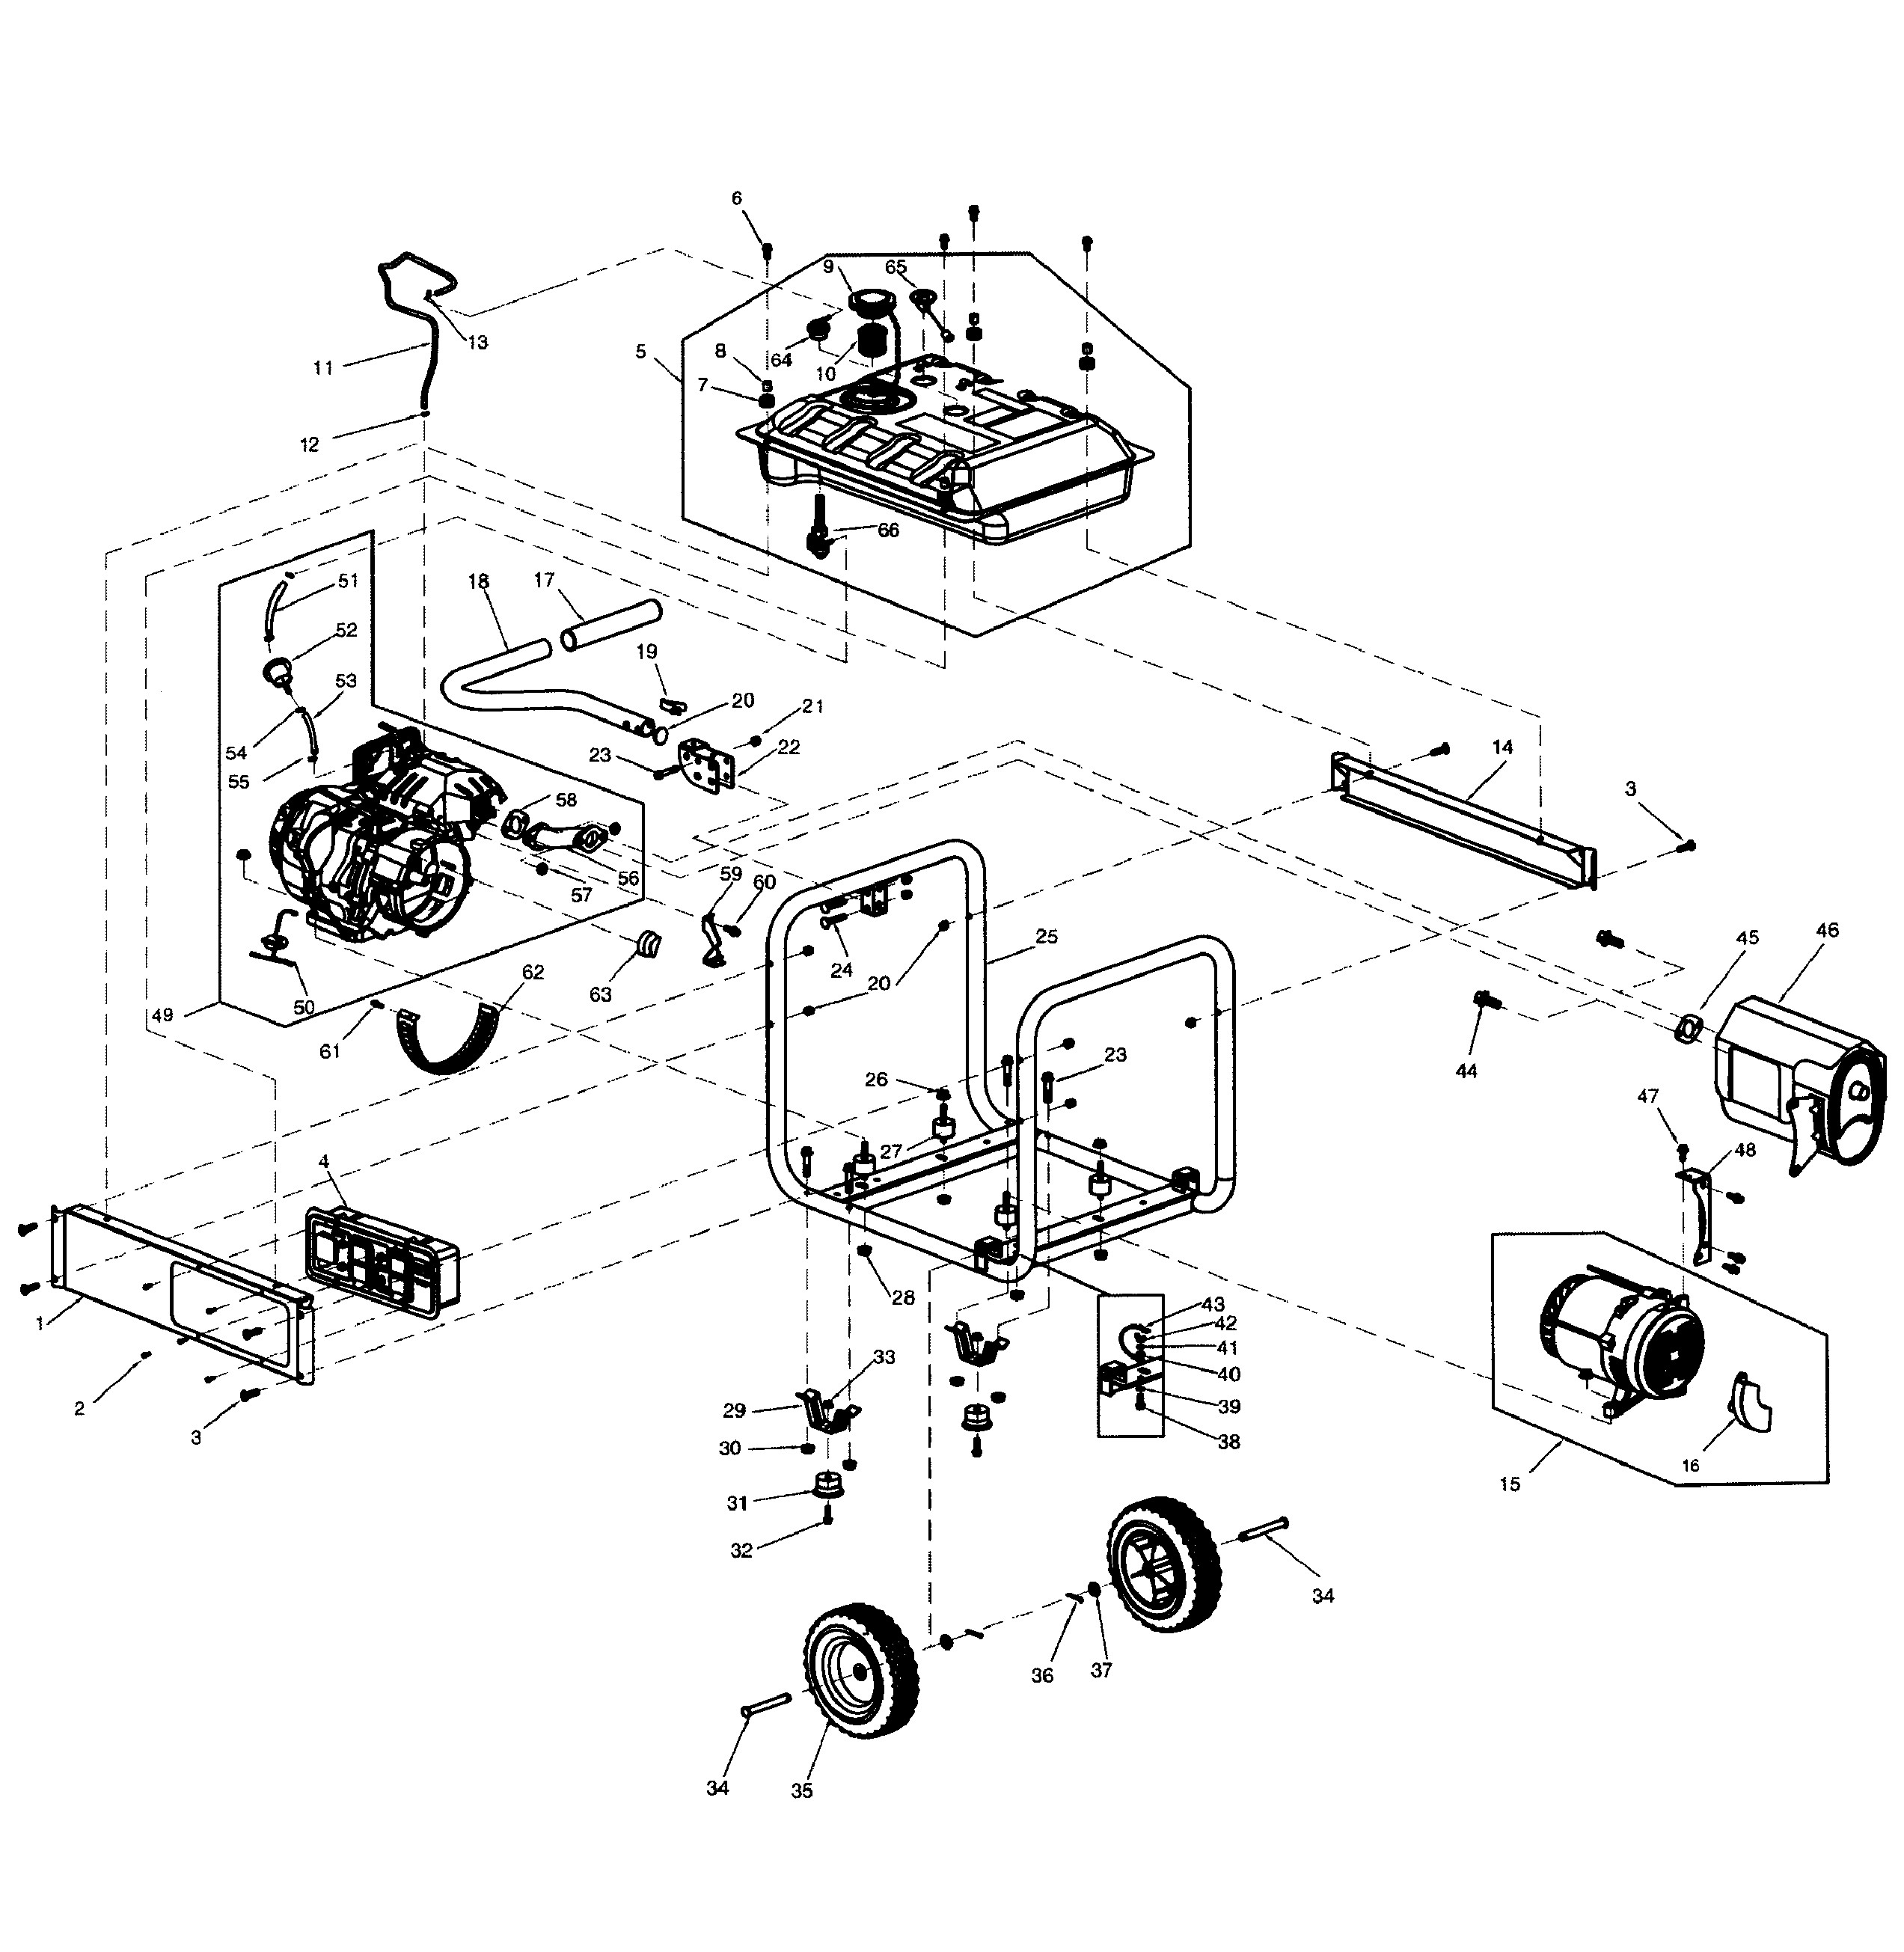 Onan Engine Parts Diagram Generac Model Gp5500 5939 6 Generator Genuine  Parts Of Onan Engine Parts